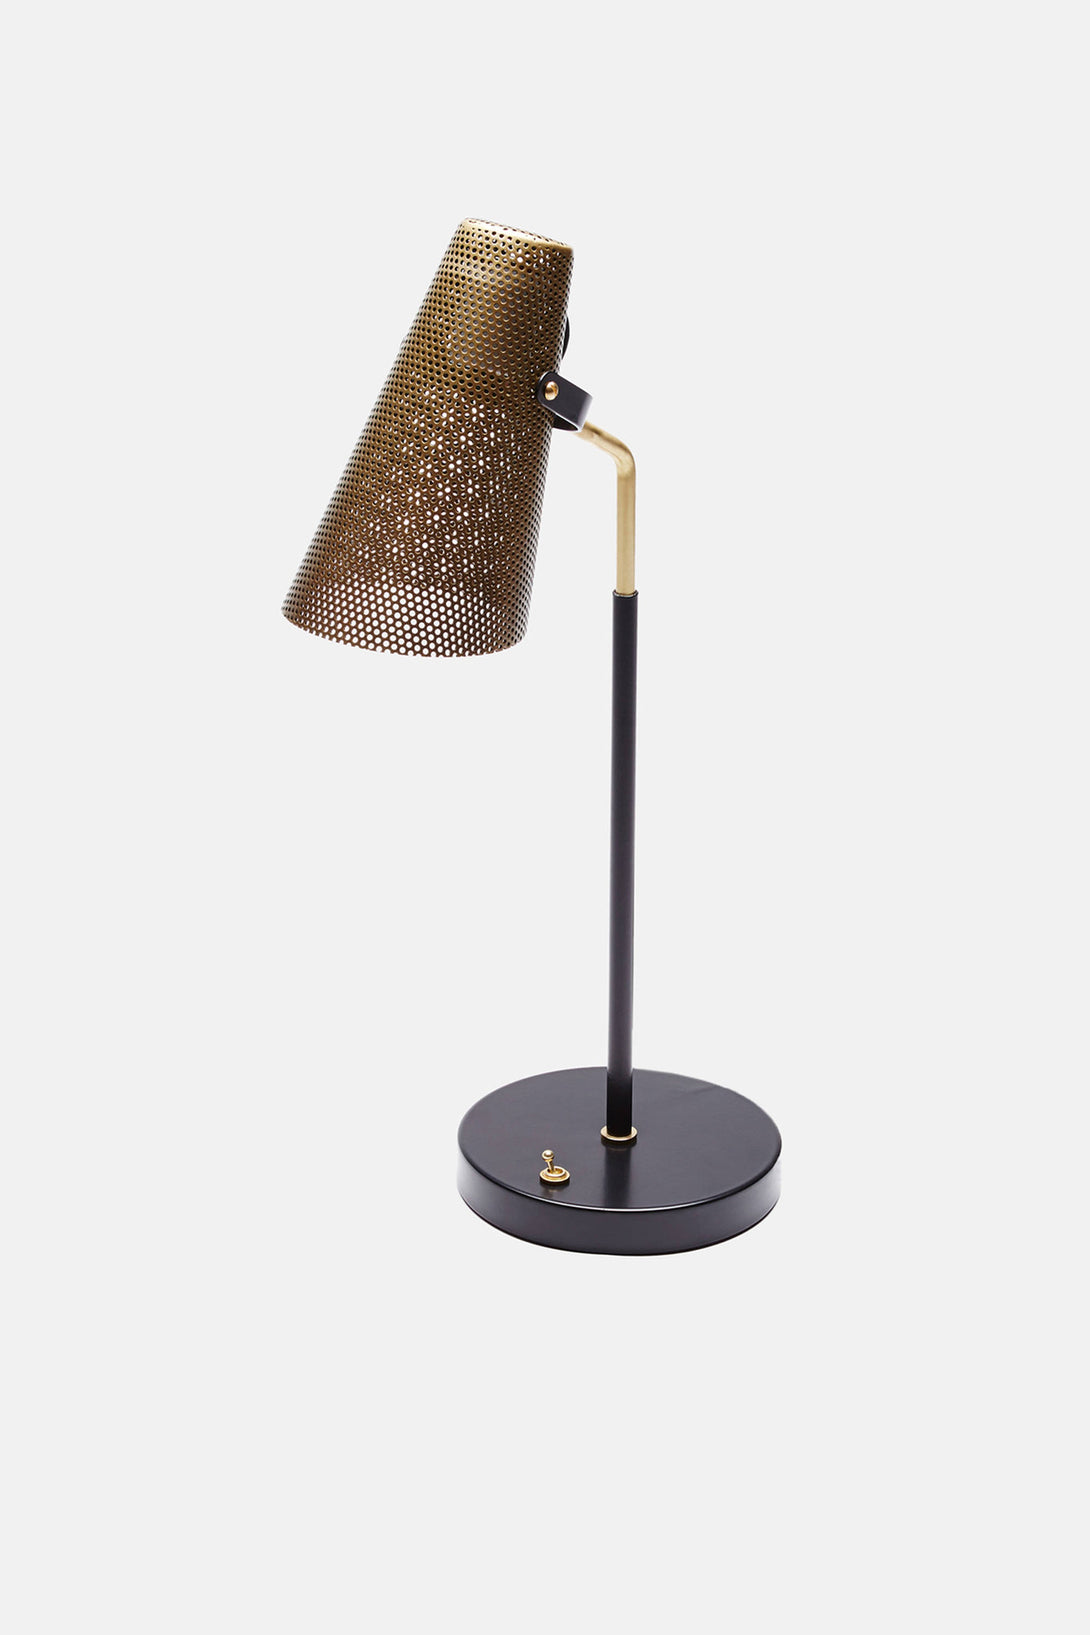 Eperon black and brass table lamp with perforated shade the line eperon black and brass table lamp with perforated shade aloadofball Choice Image